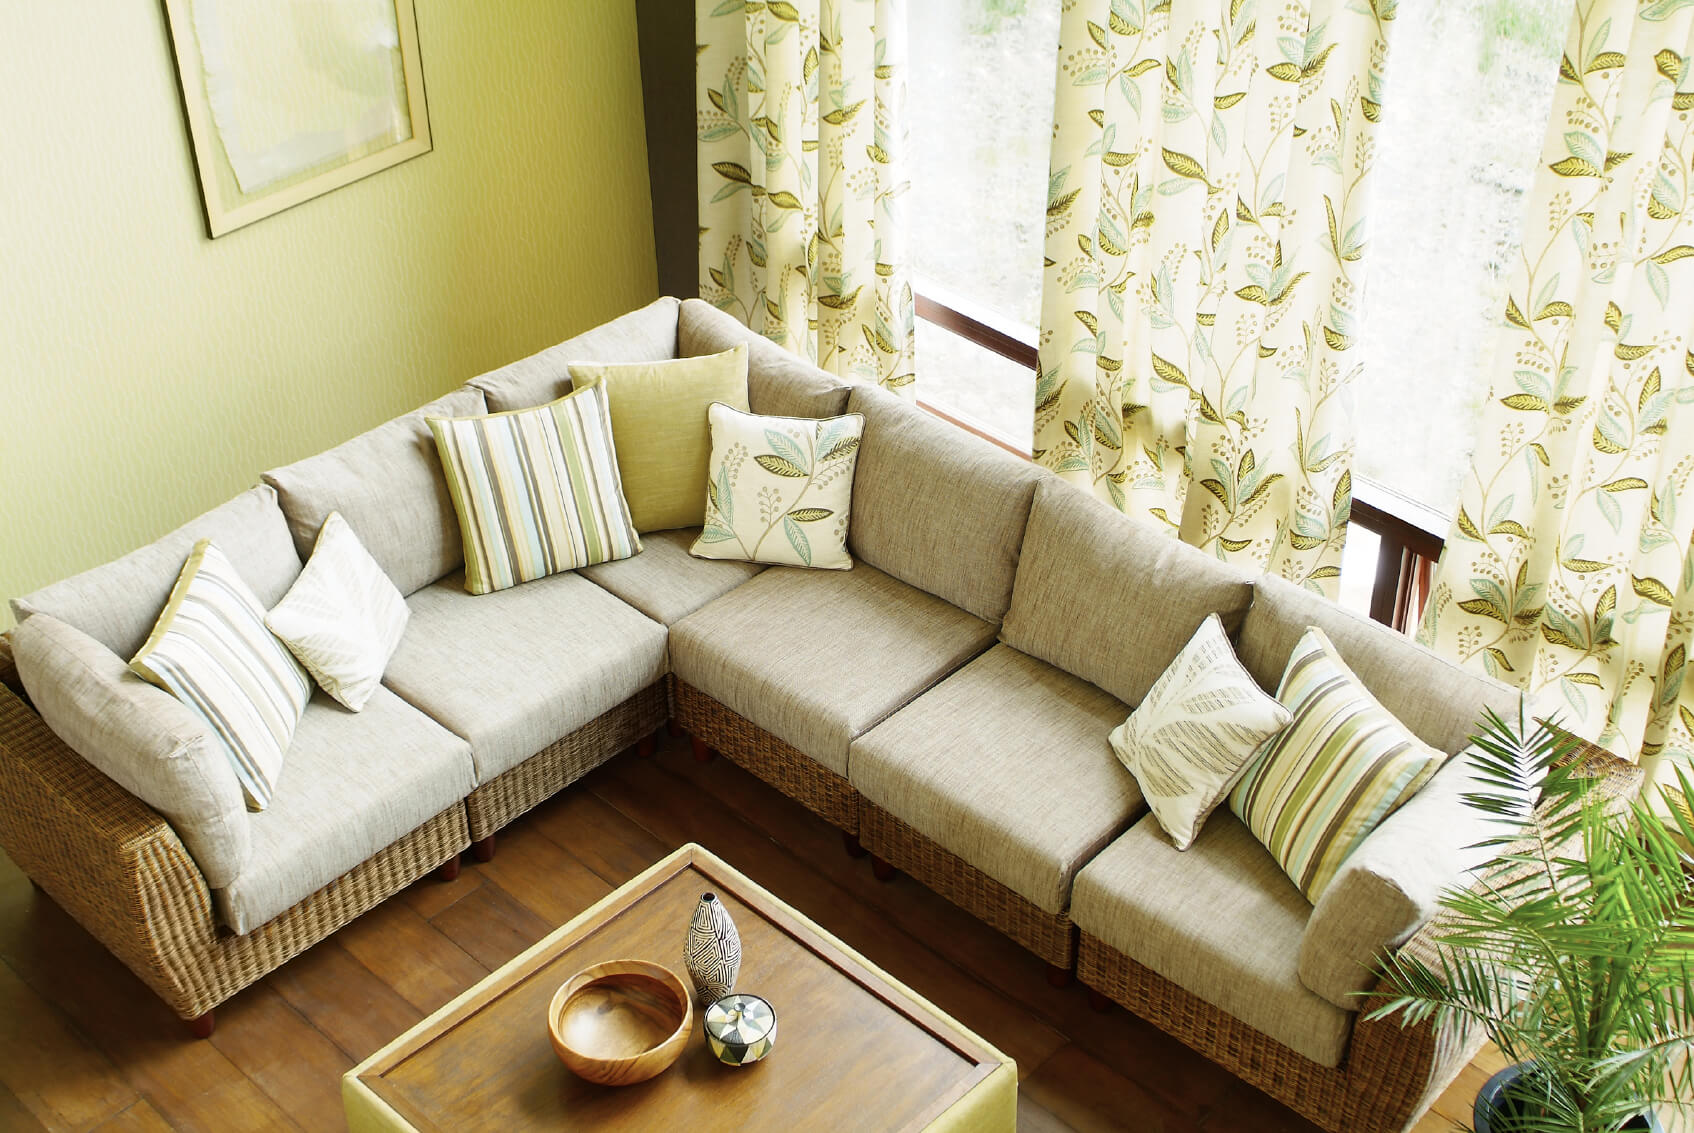 53 cozy small living room interior designs small spaces Sofa set designs for home